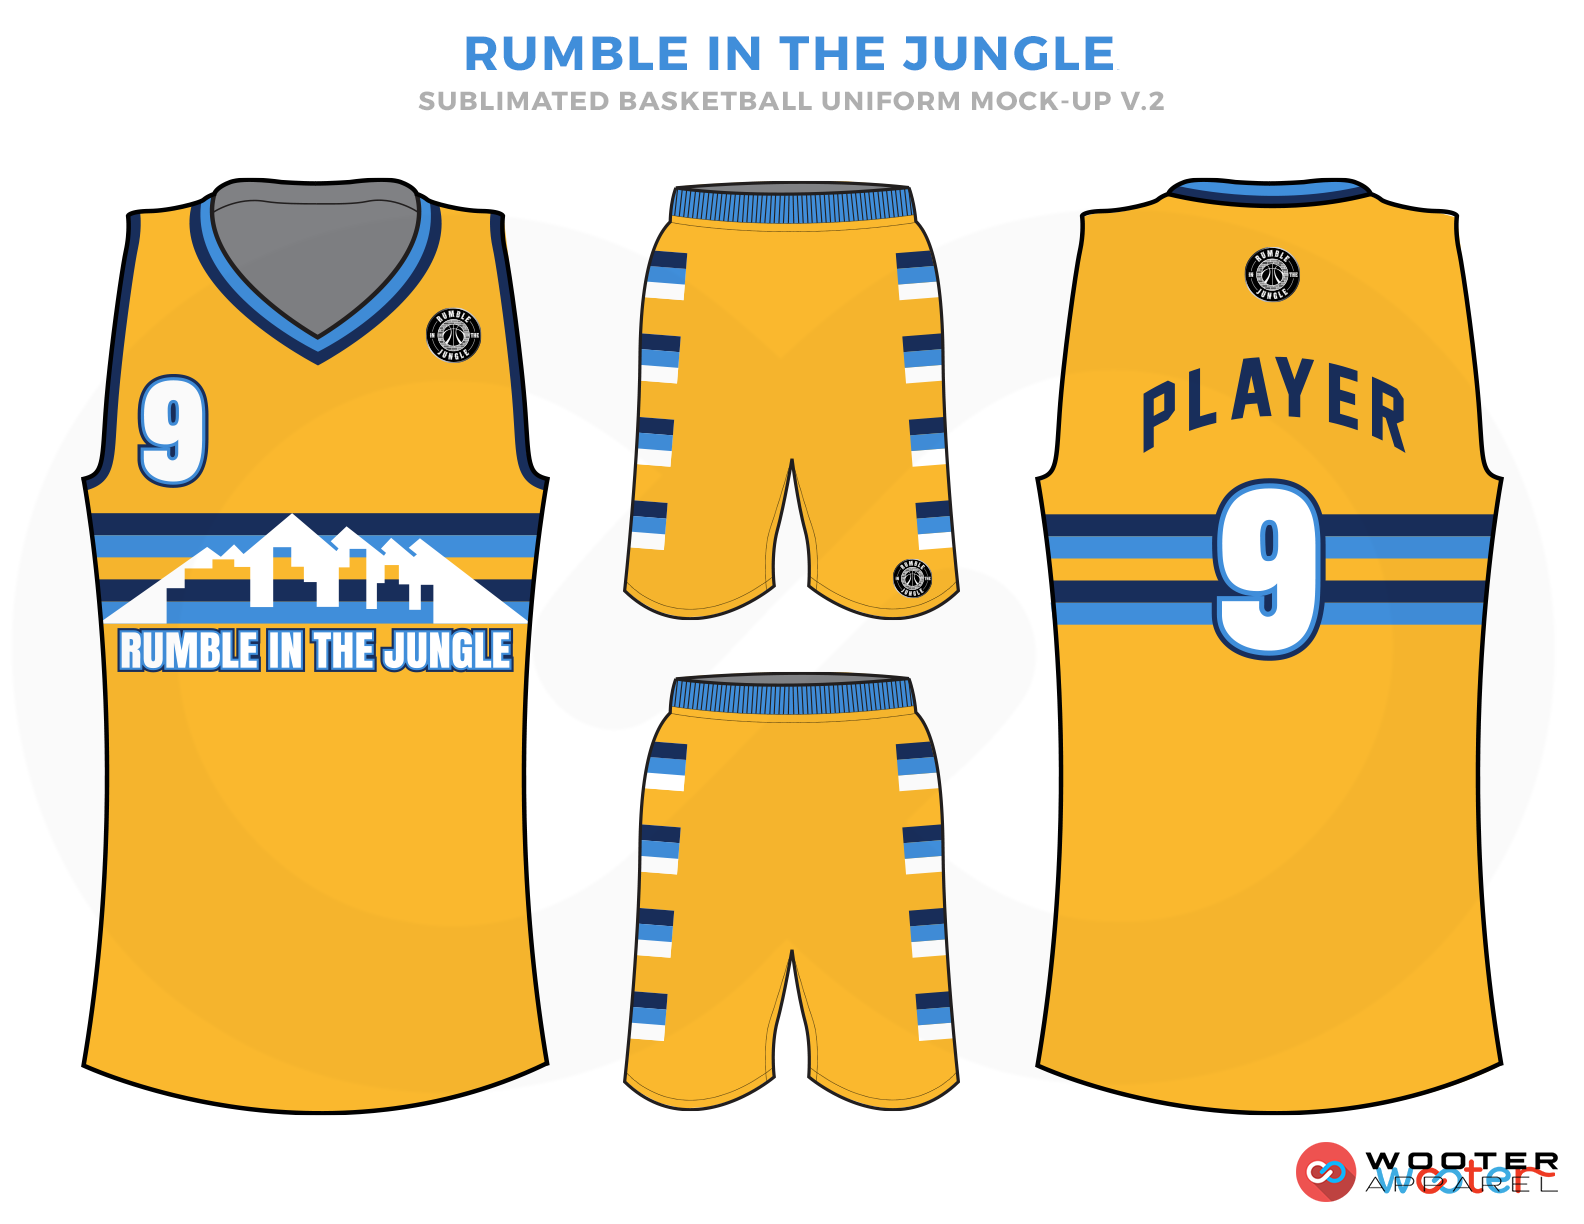 RUMBLE IN THE JUNGLE Golden Blue Black and White Basketball Uniforms, Jersey and Shorts